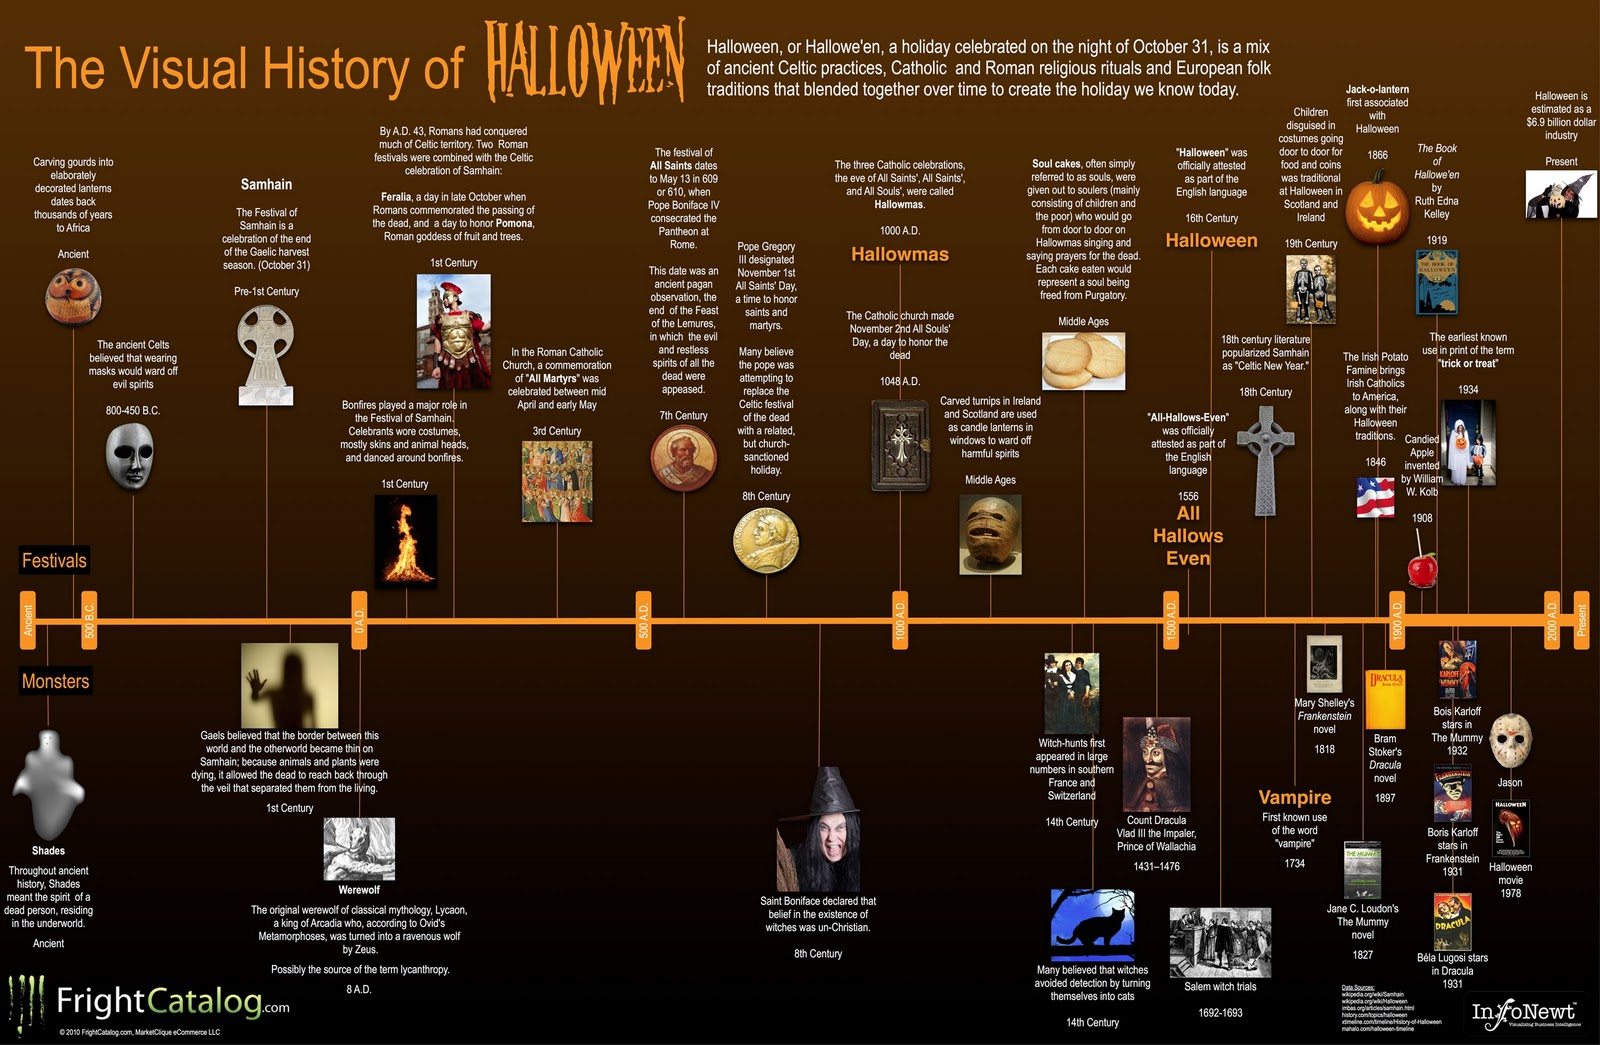 history of Halloween, infographic